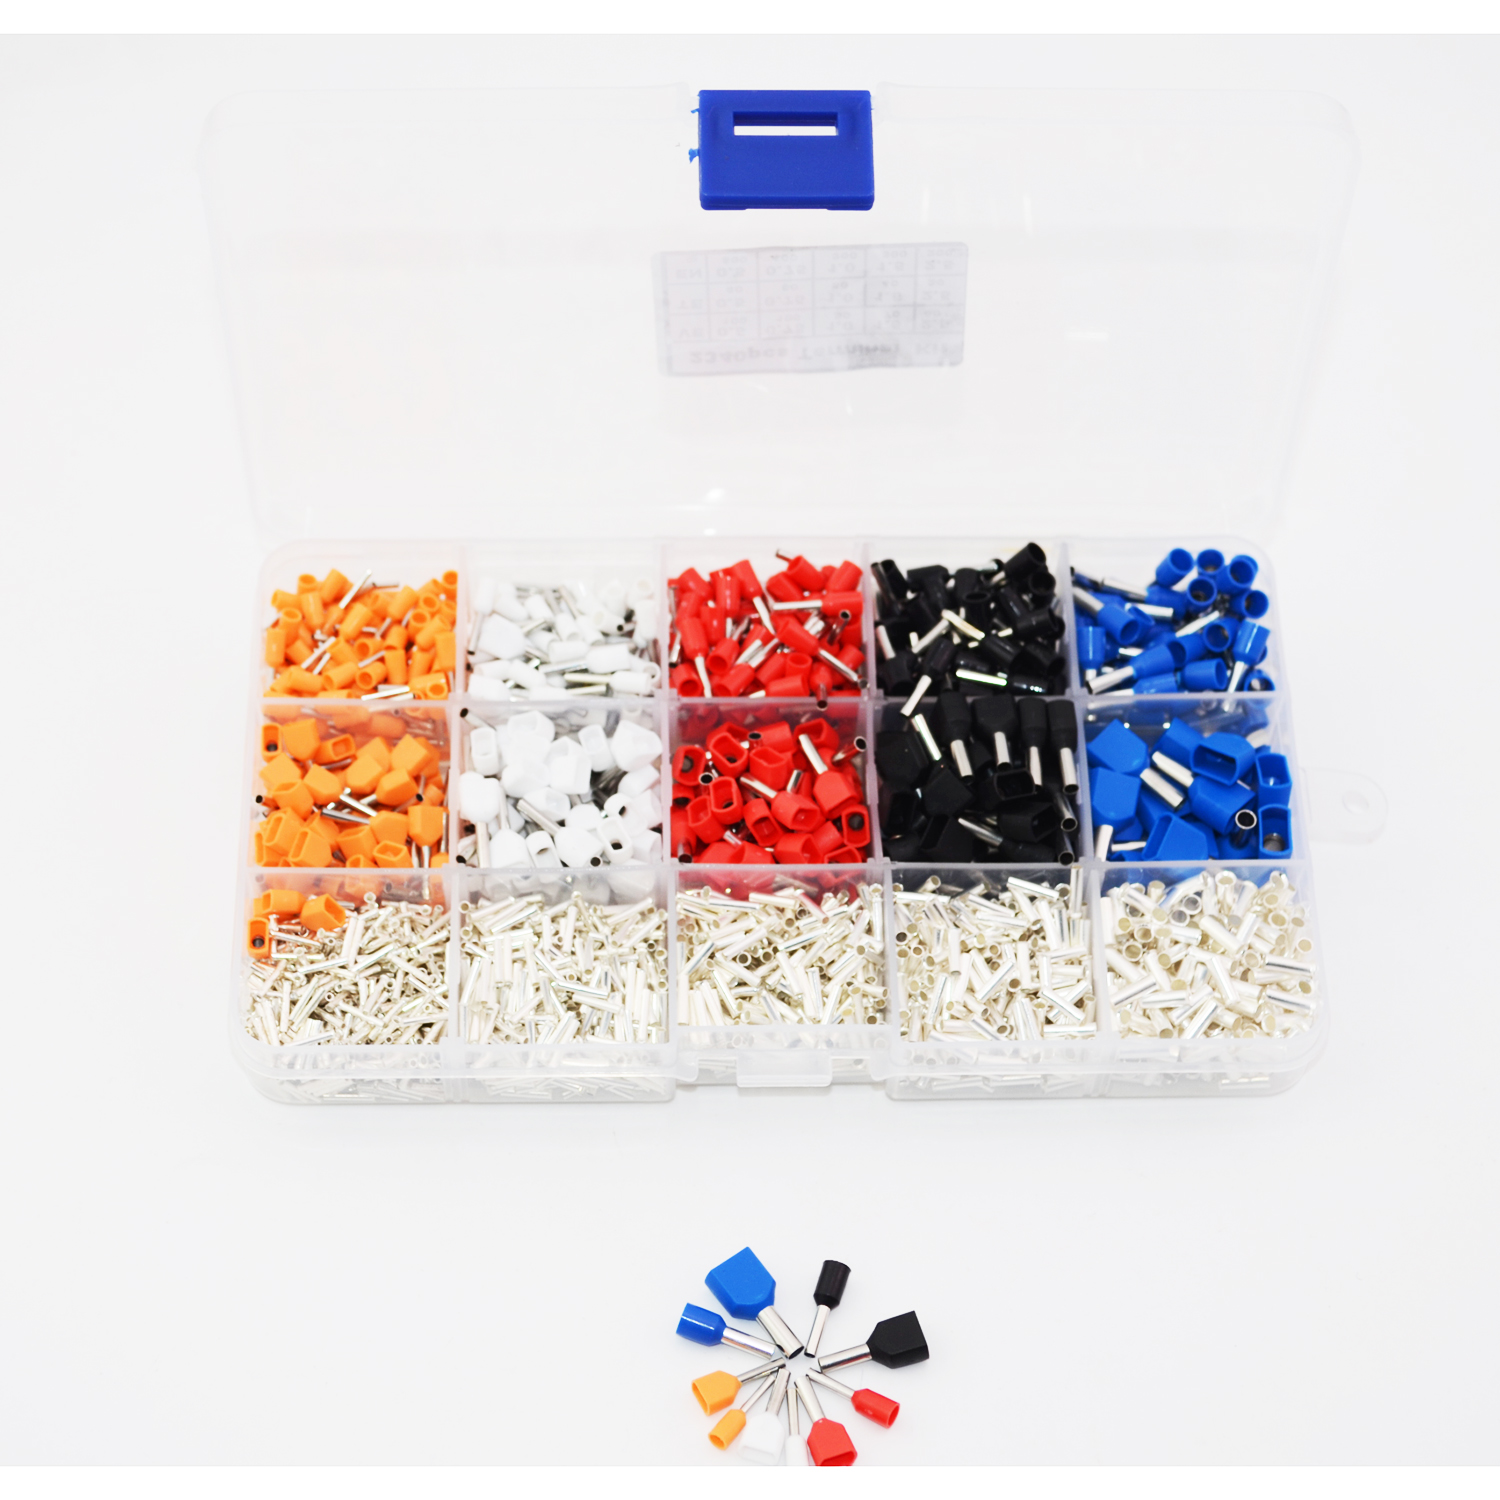 5 color 15 value 2340pcs/lot Bootlace Ferrules kit set Wire Crimp Connector Insulated Cord Pin End Terminal 800pcs cable bootlace copper ferrules kit set wire electrical crimp connector insulated cord pin end terminal hand repair kit